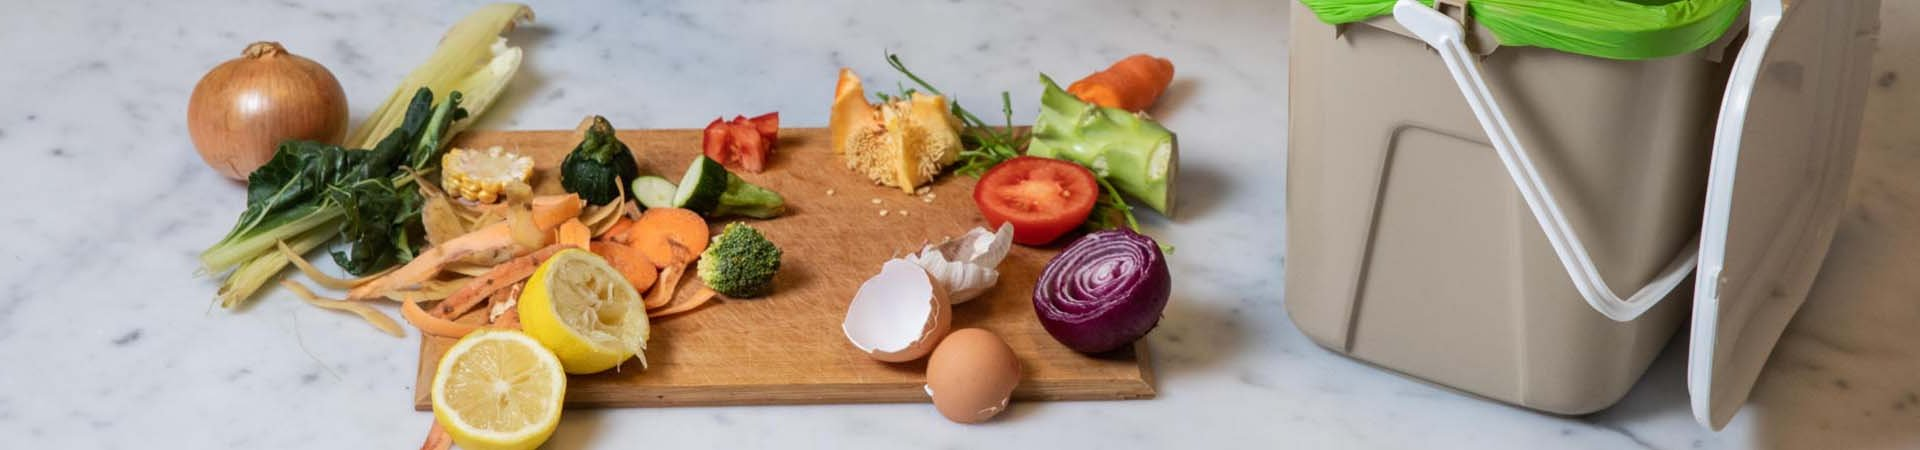 recycling-food-scraps-in-strata